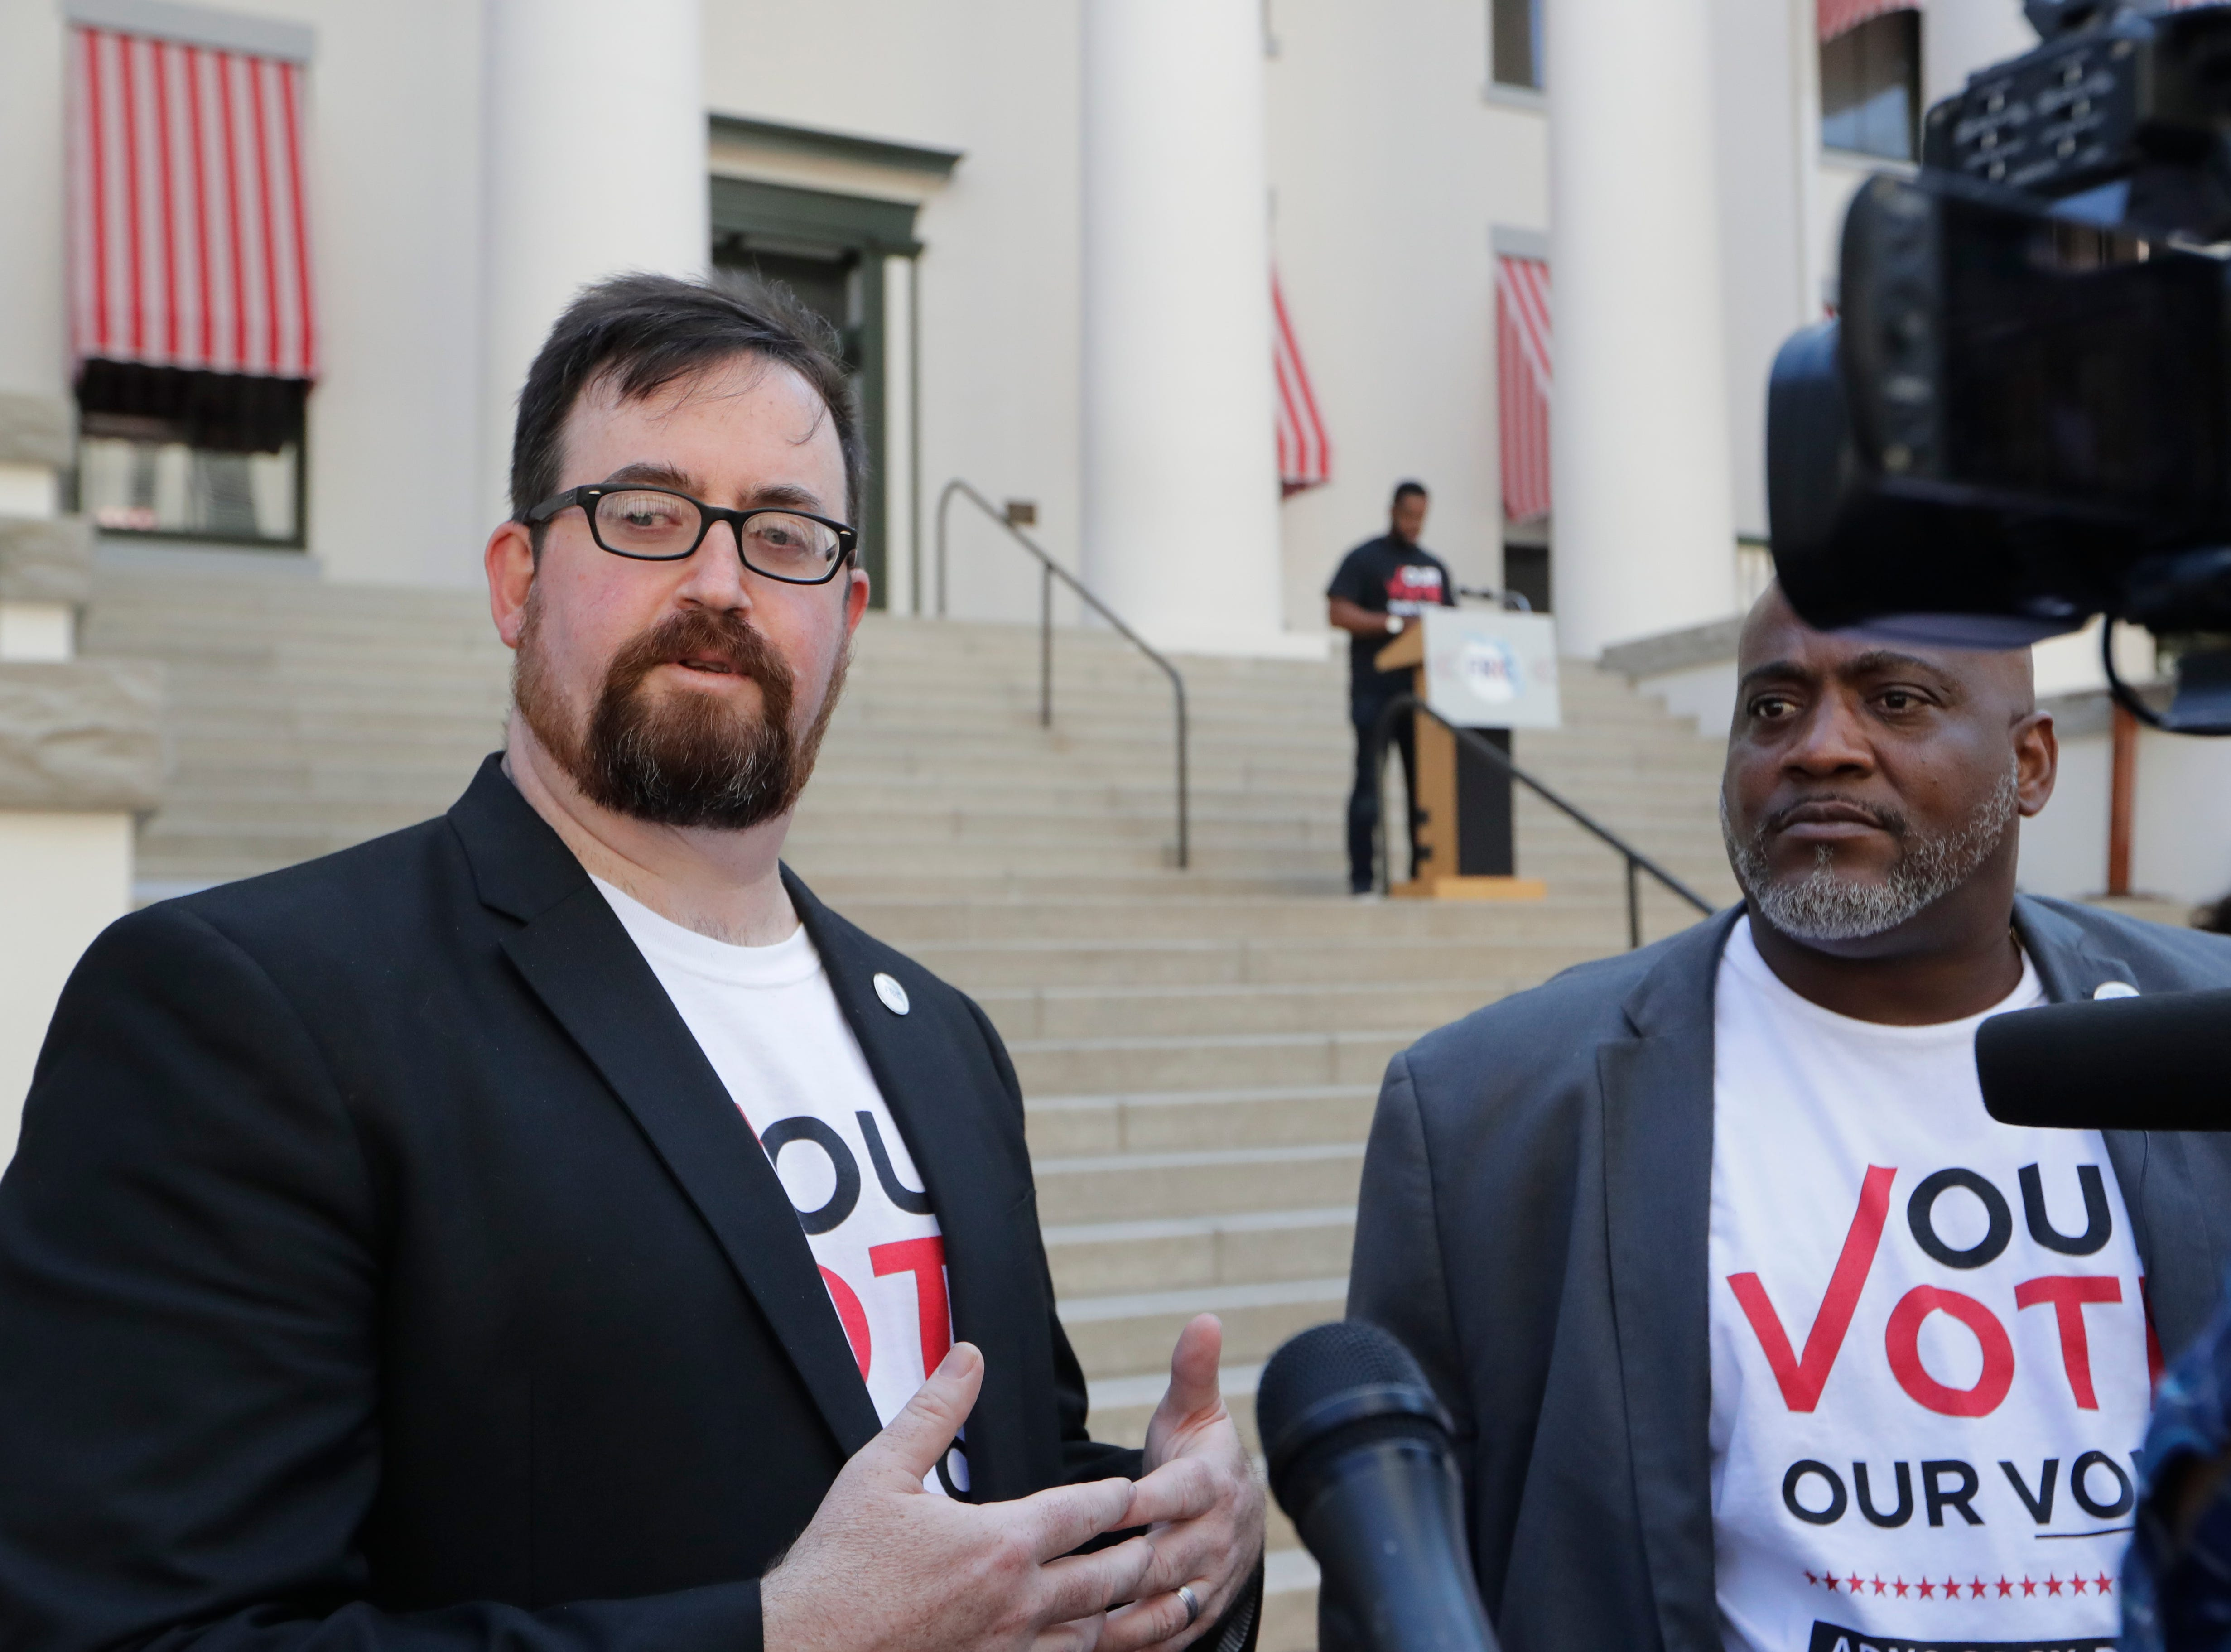 Neil Volz, Florida Rights Restoration Coalition political director, speaks to the press before Floridians with felony convictons gather on the steps of the Historic Capitol Tuesday and meet with legislators to advocate for Amendment 4 legislation.